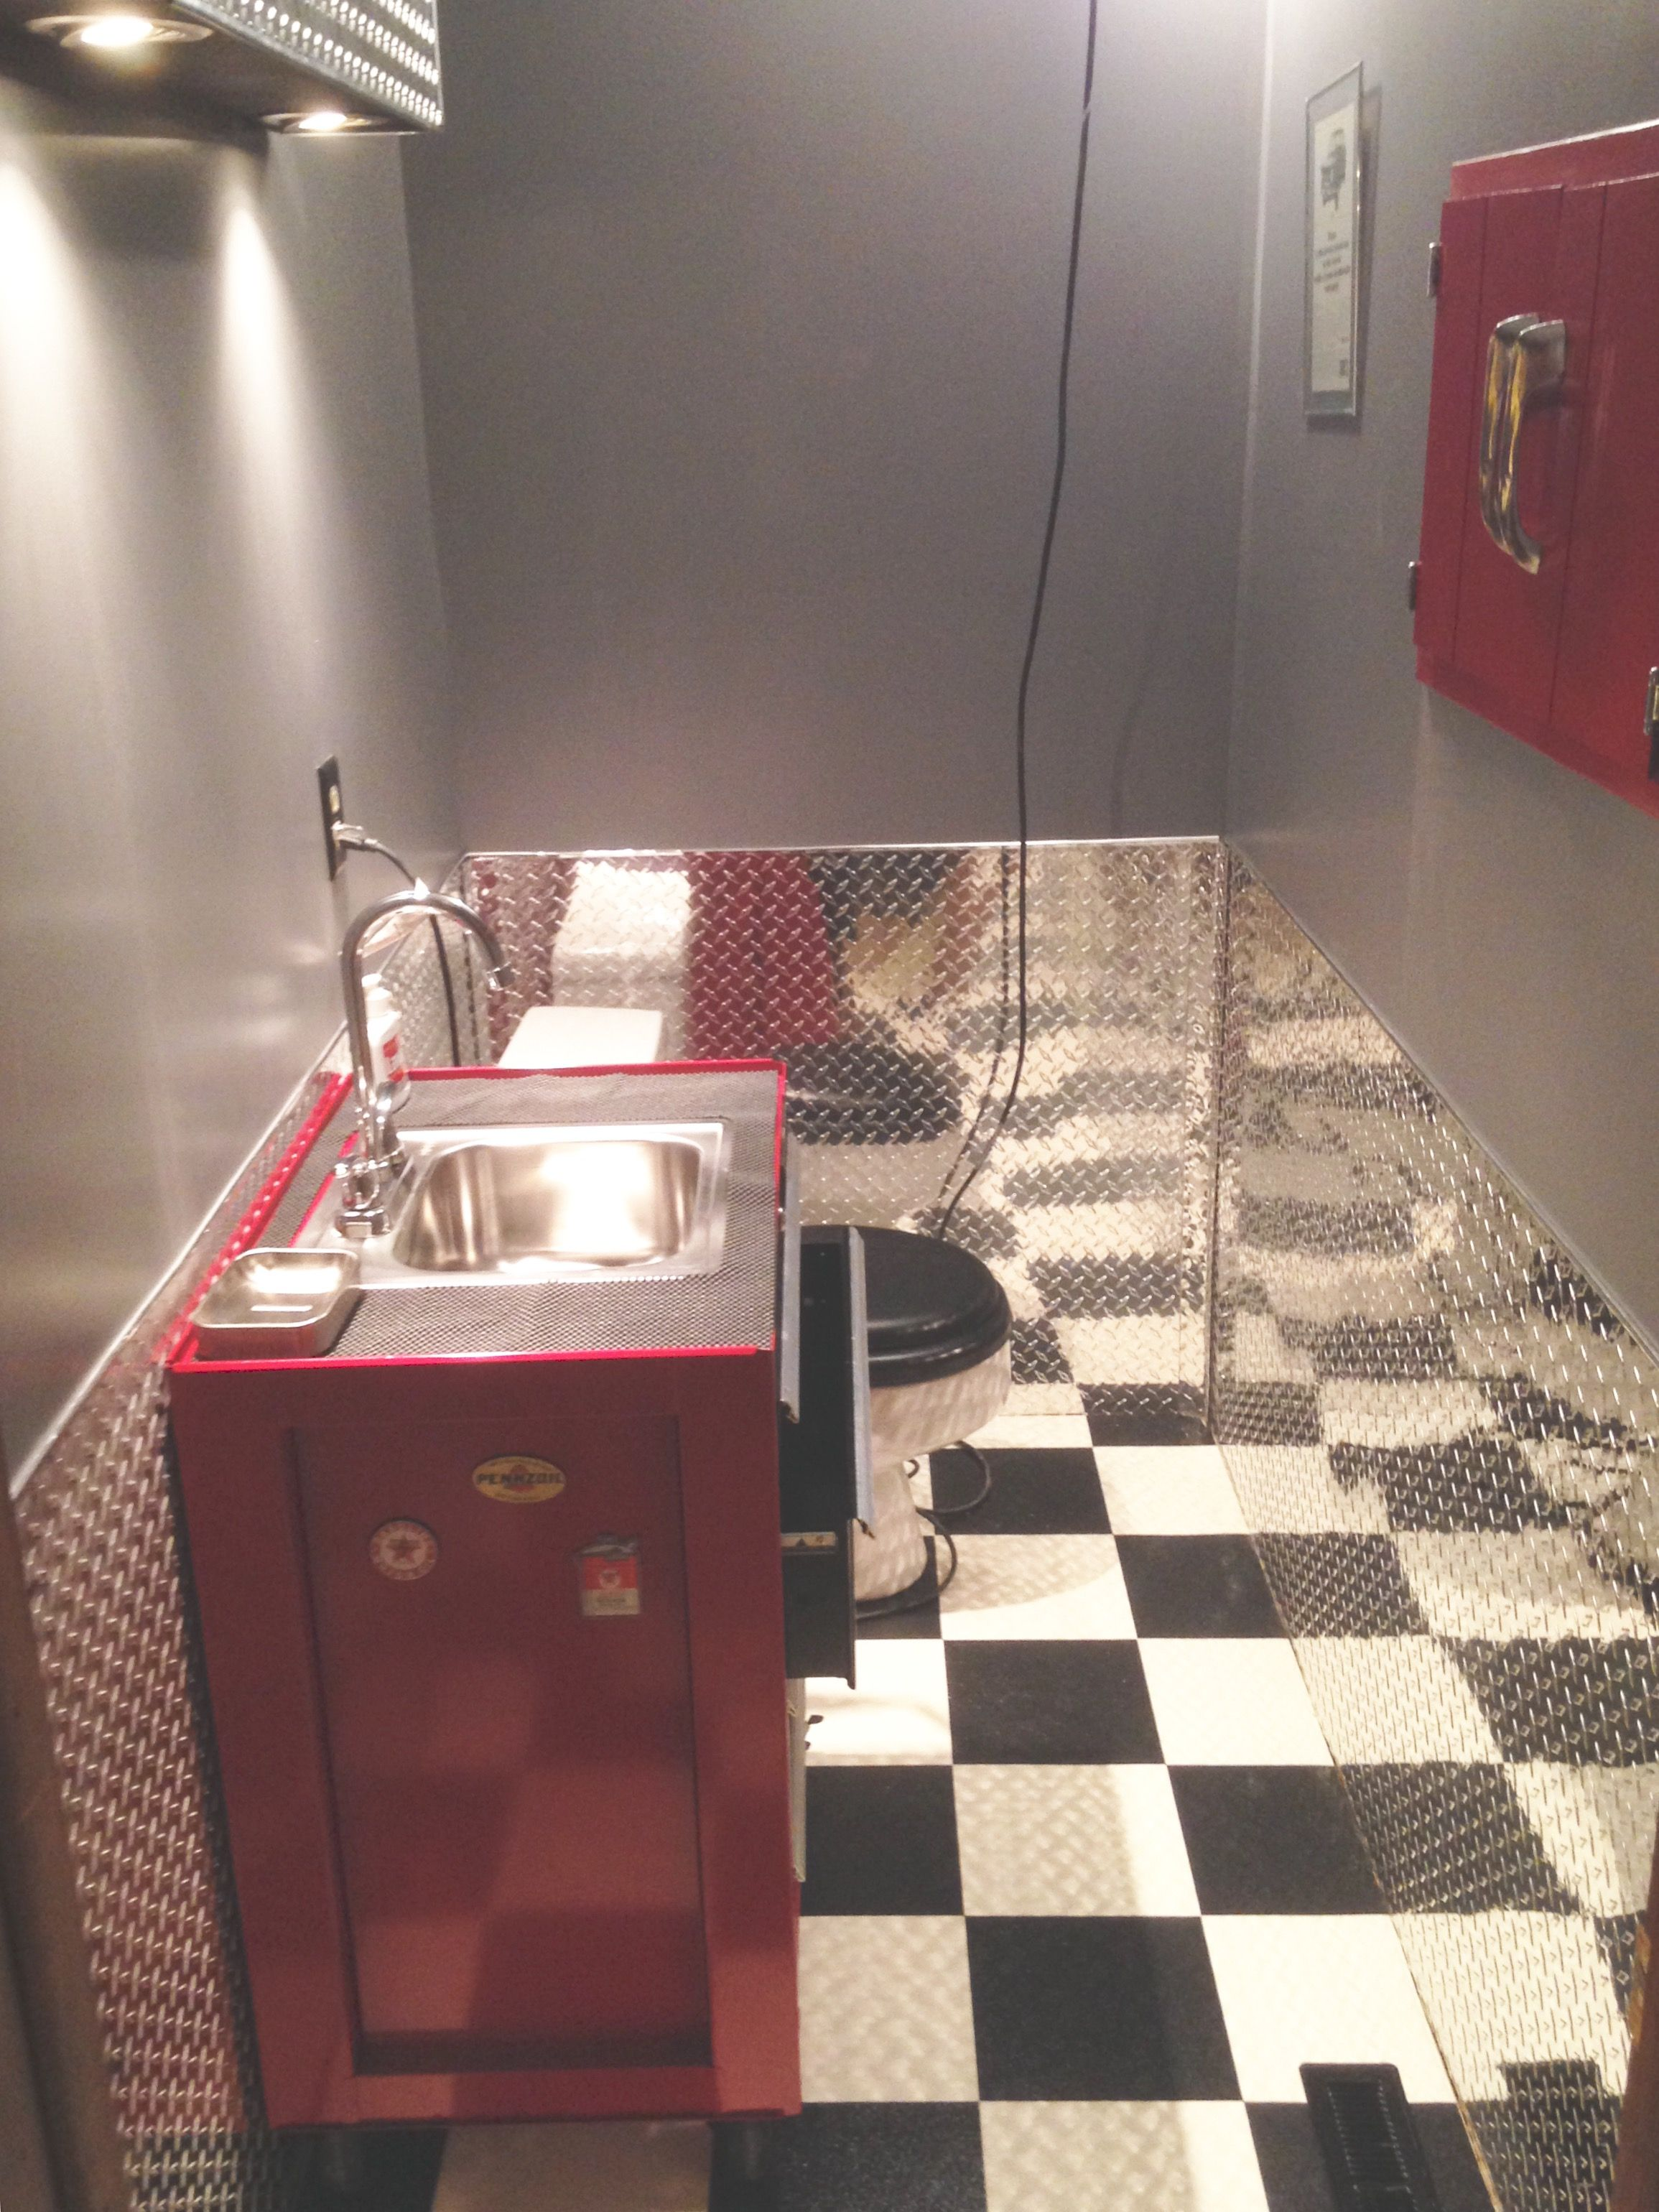 Now this is a bathroom! Diamond Plate Wainscot and a converted ...